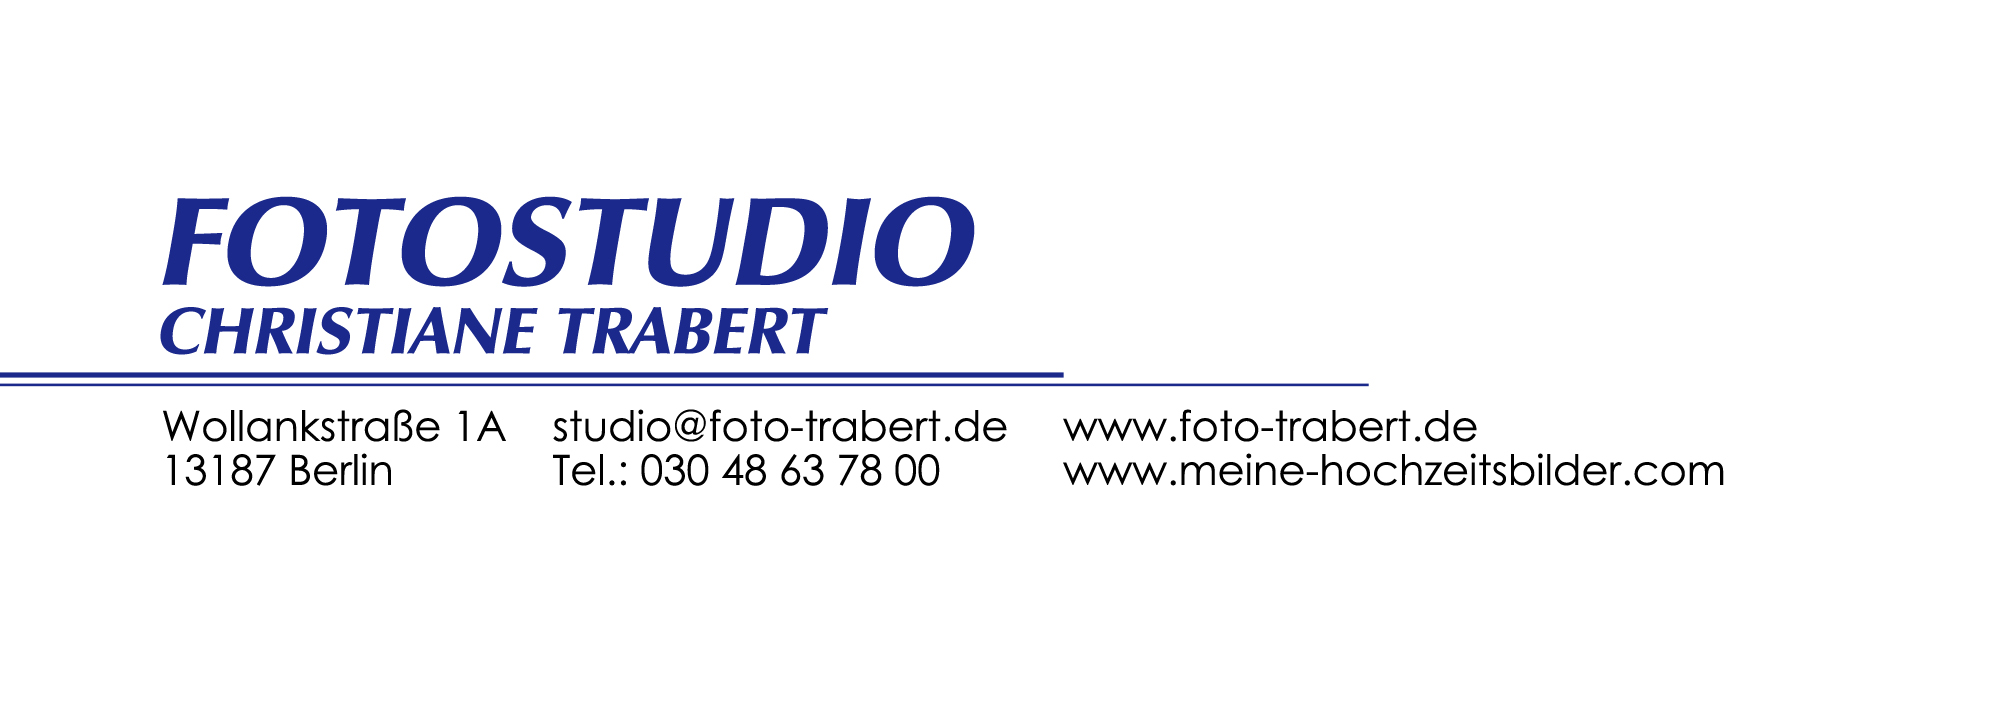 Fotostudio Christiane Trabert